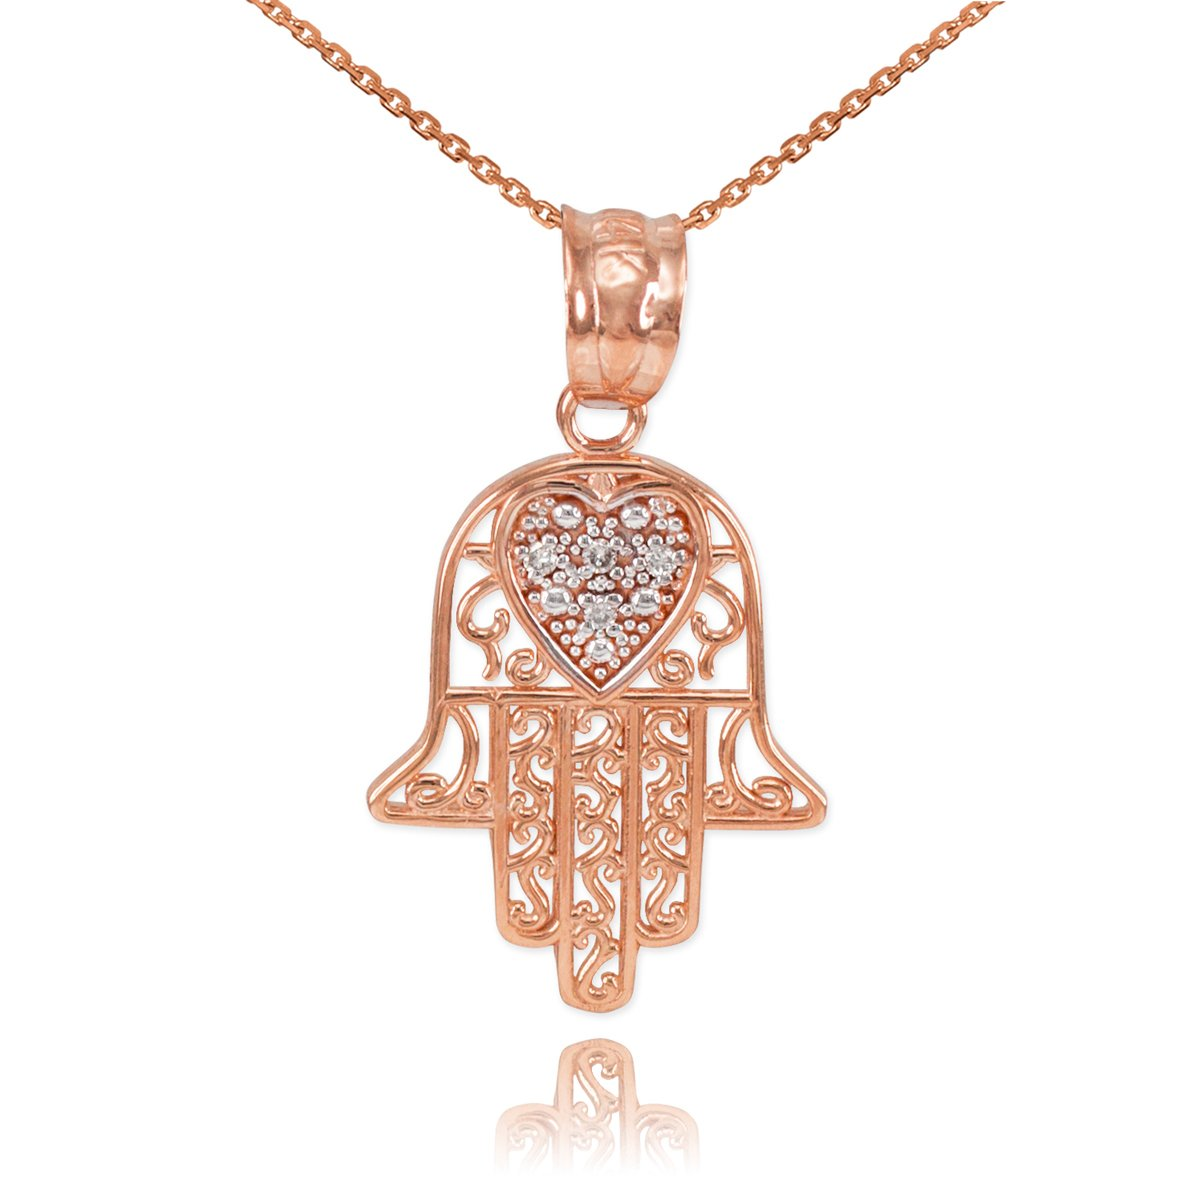 Fine 14k Rose Gold Diamond-Accented Heart Filigree-Style Hamsa Pendant Necklace, 16'' by Middle Eastern Jewelry